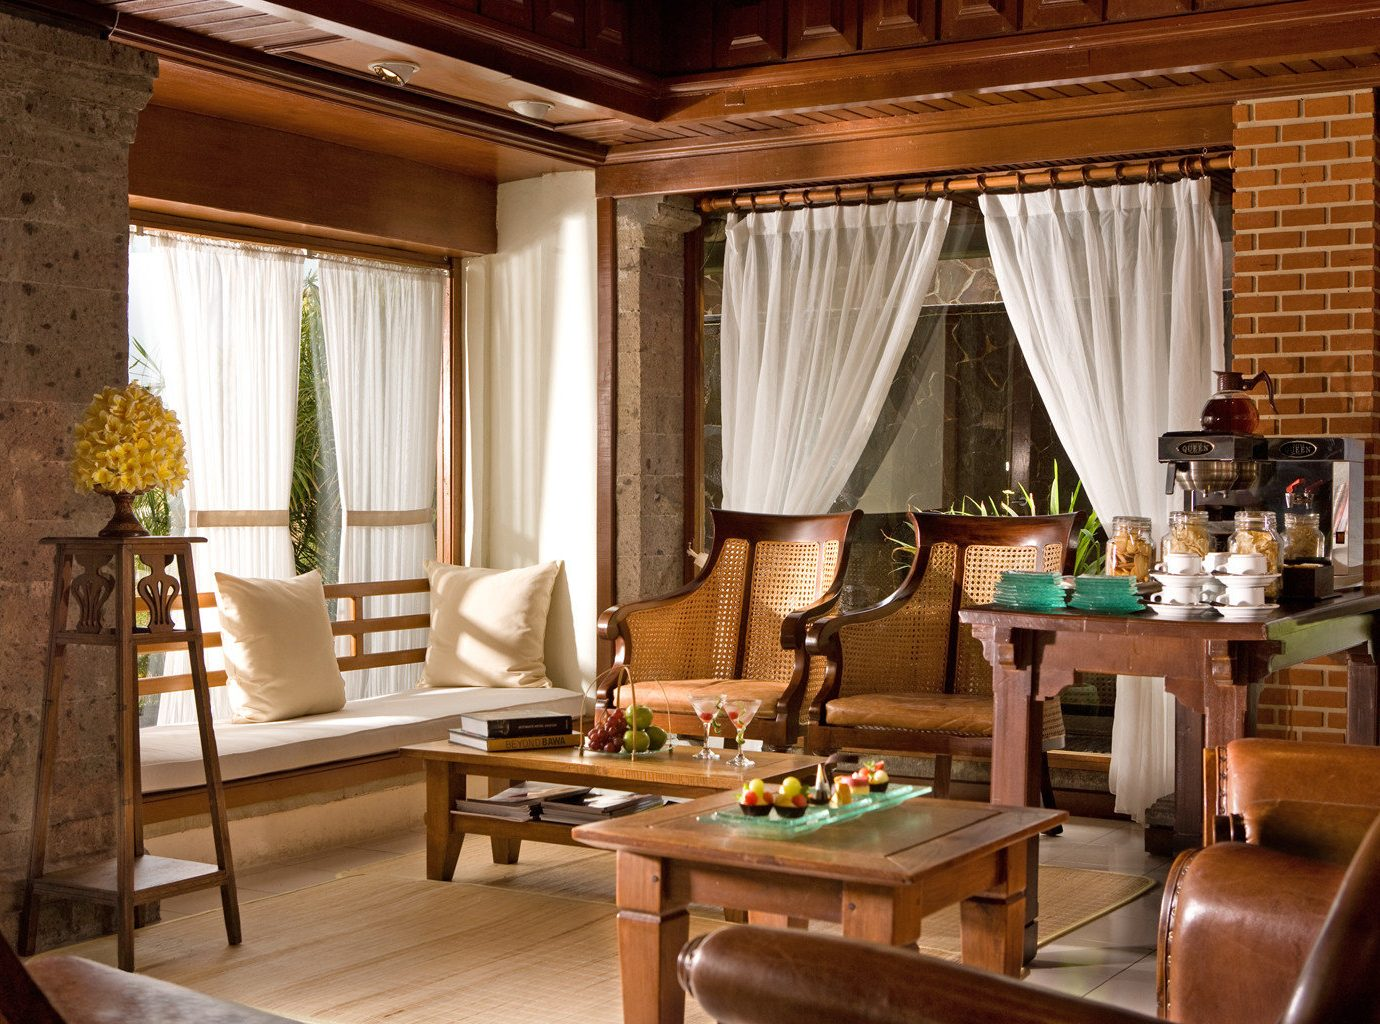 Cultural Drink Eat Eco Jetsetter Guides Jungle Lounge Outdoor Activities Resort Villa Wellness indoor table floor room Living window property curtain living room estate dining room interior design home Suite cottage real estate furniture farmhouse